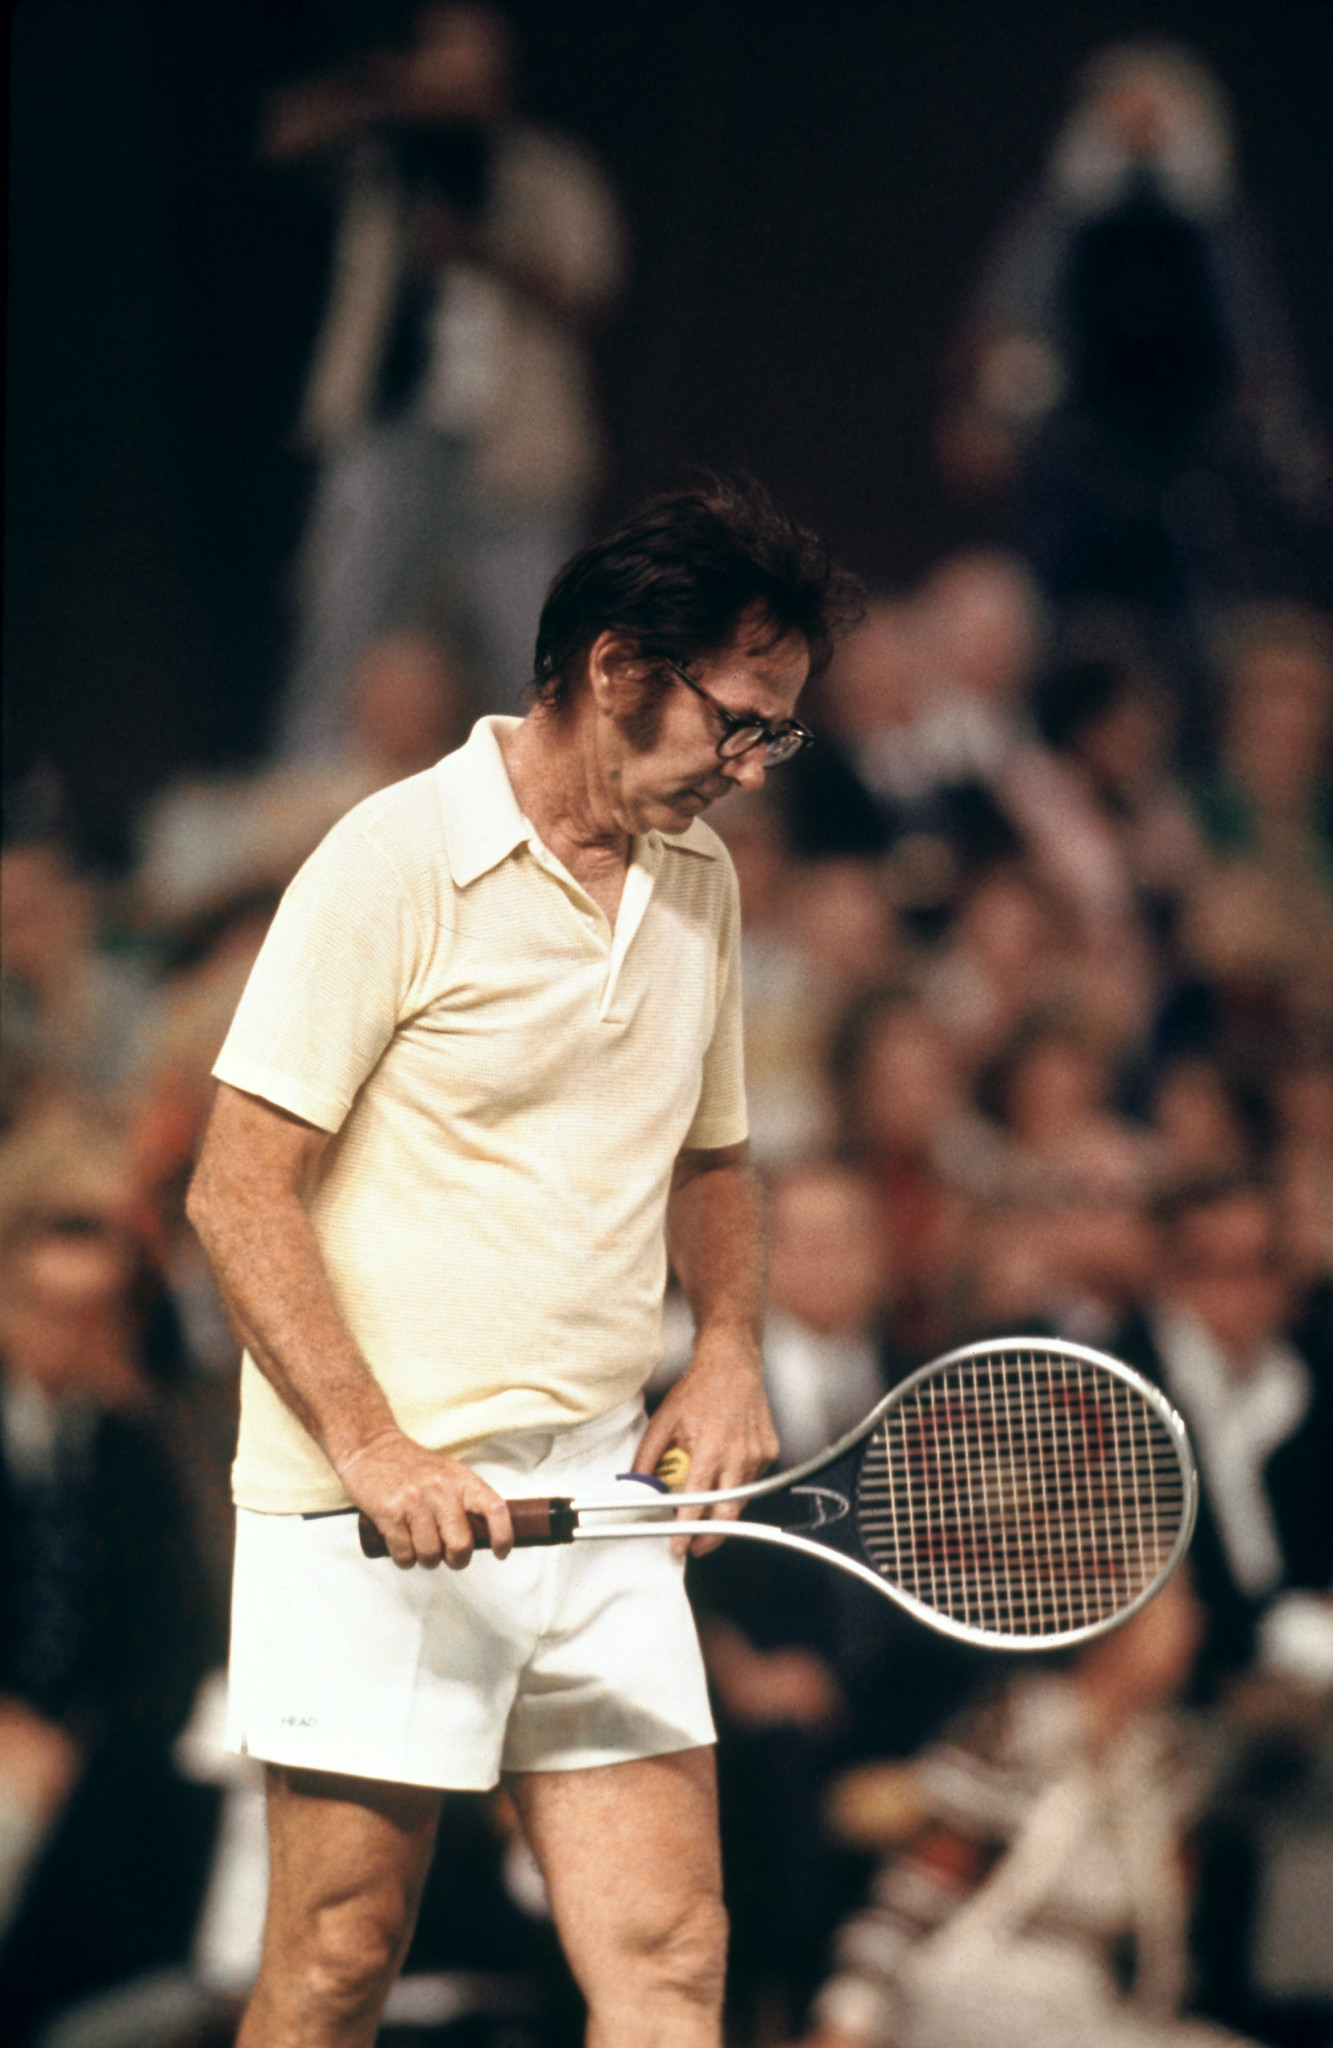 A 55-year-old Bobby Riggs on court in 1973 - the year he played Margaret Court and Billie Jean King in two momentous matches ©Getty Images